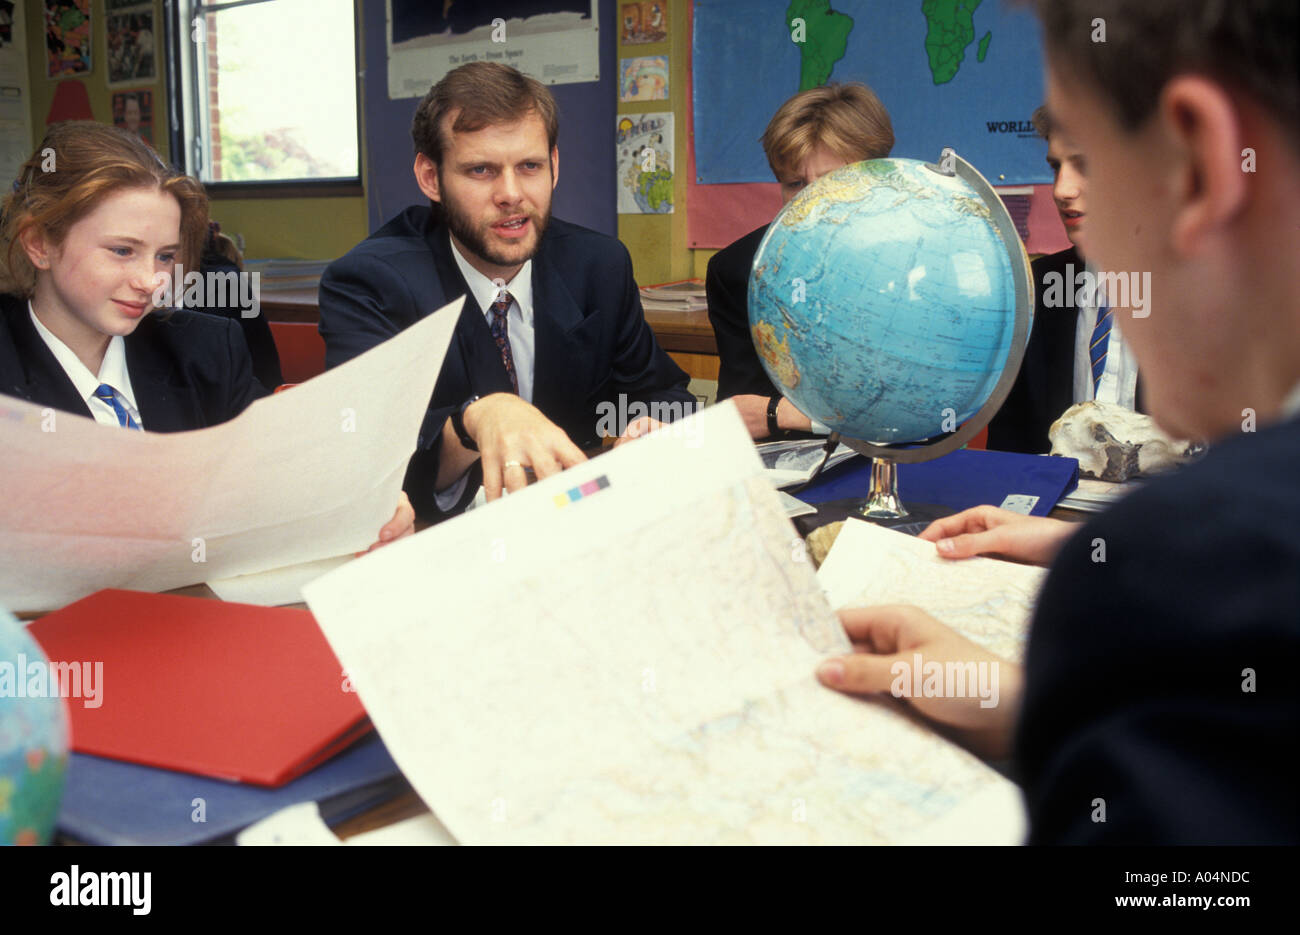 Secondary geography lesson with teacher showing students a world globe. - Stock Image